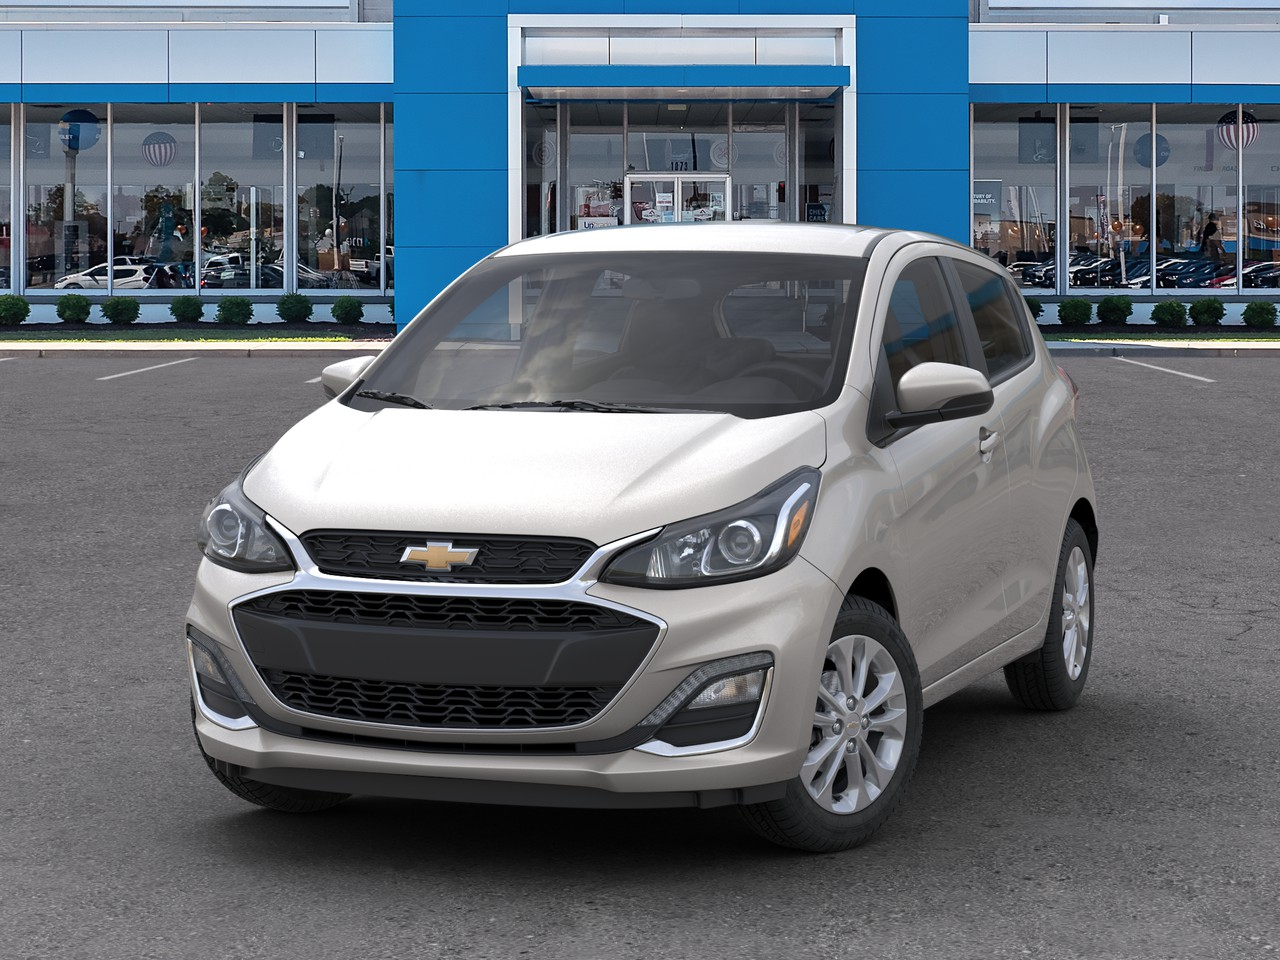 New 2020 Chevrolet Spark 1LT Automatic Front Wheel Drive Compact